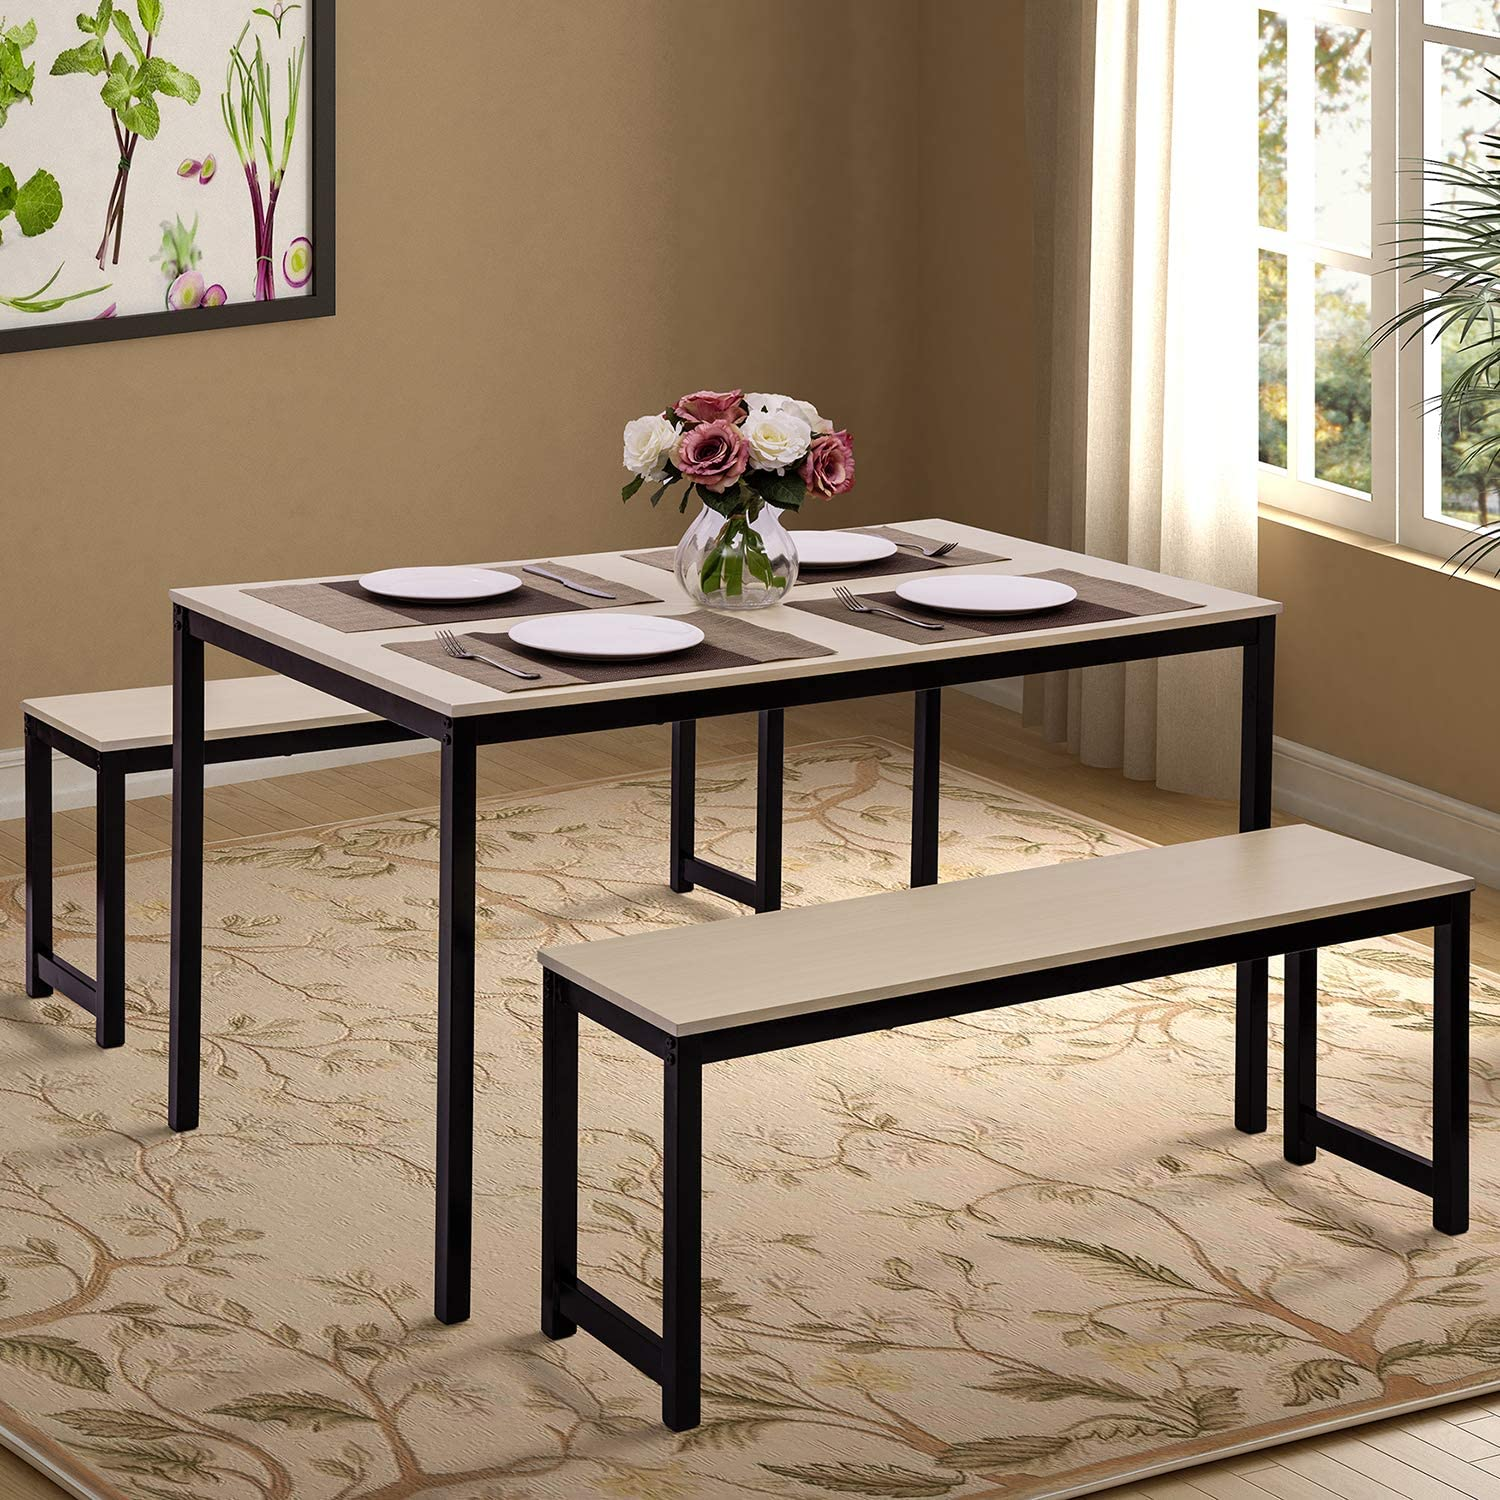 Amazon Com Dining Table Set Hinpia 3 Pieces Modern Kitchen Table Set With 2 Benches Wood Tabletop With Metal Frame Beige Black Table Chair Sets